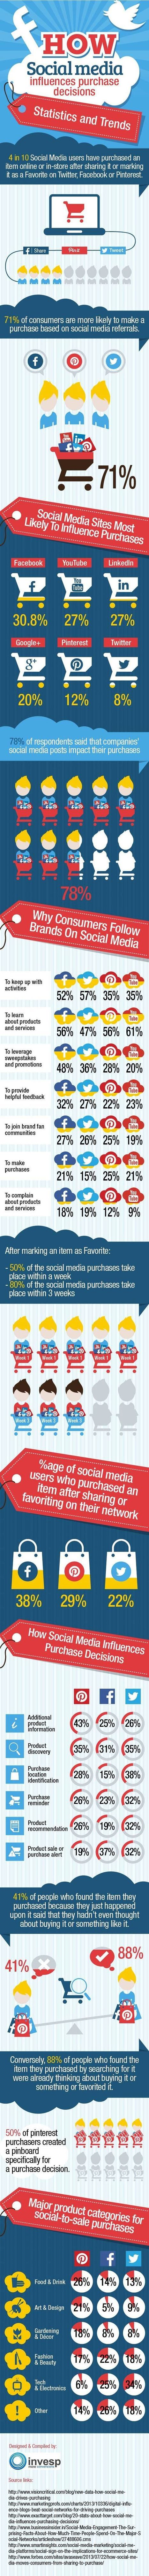 How Social Media Influences Purchase Decisions - Business 2 Community | content marketing | Scoop.it